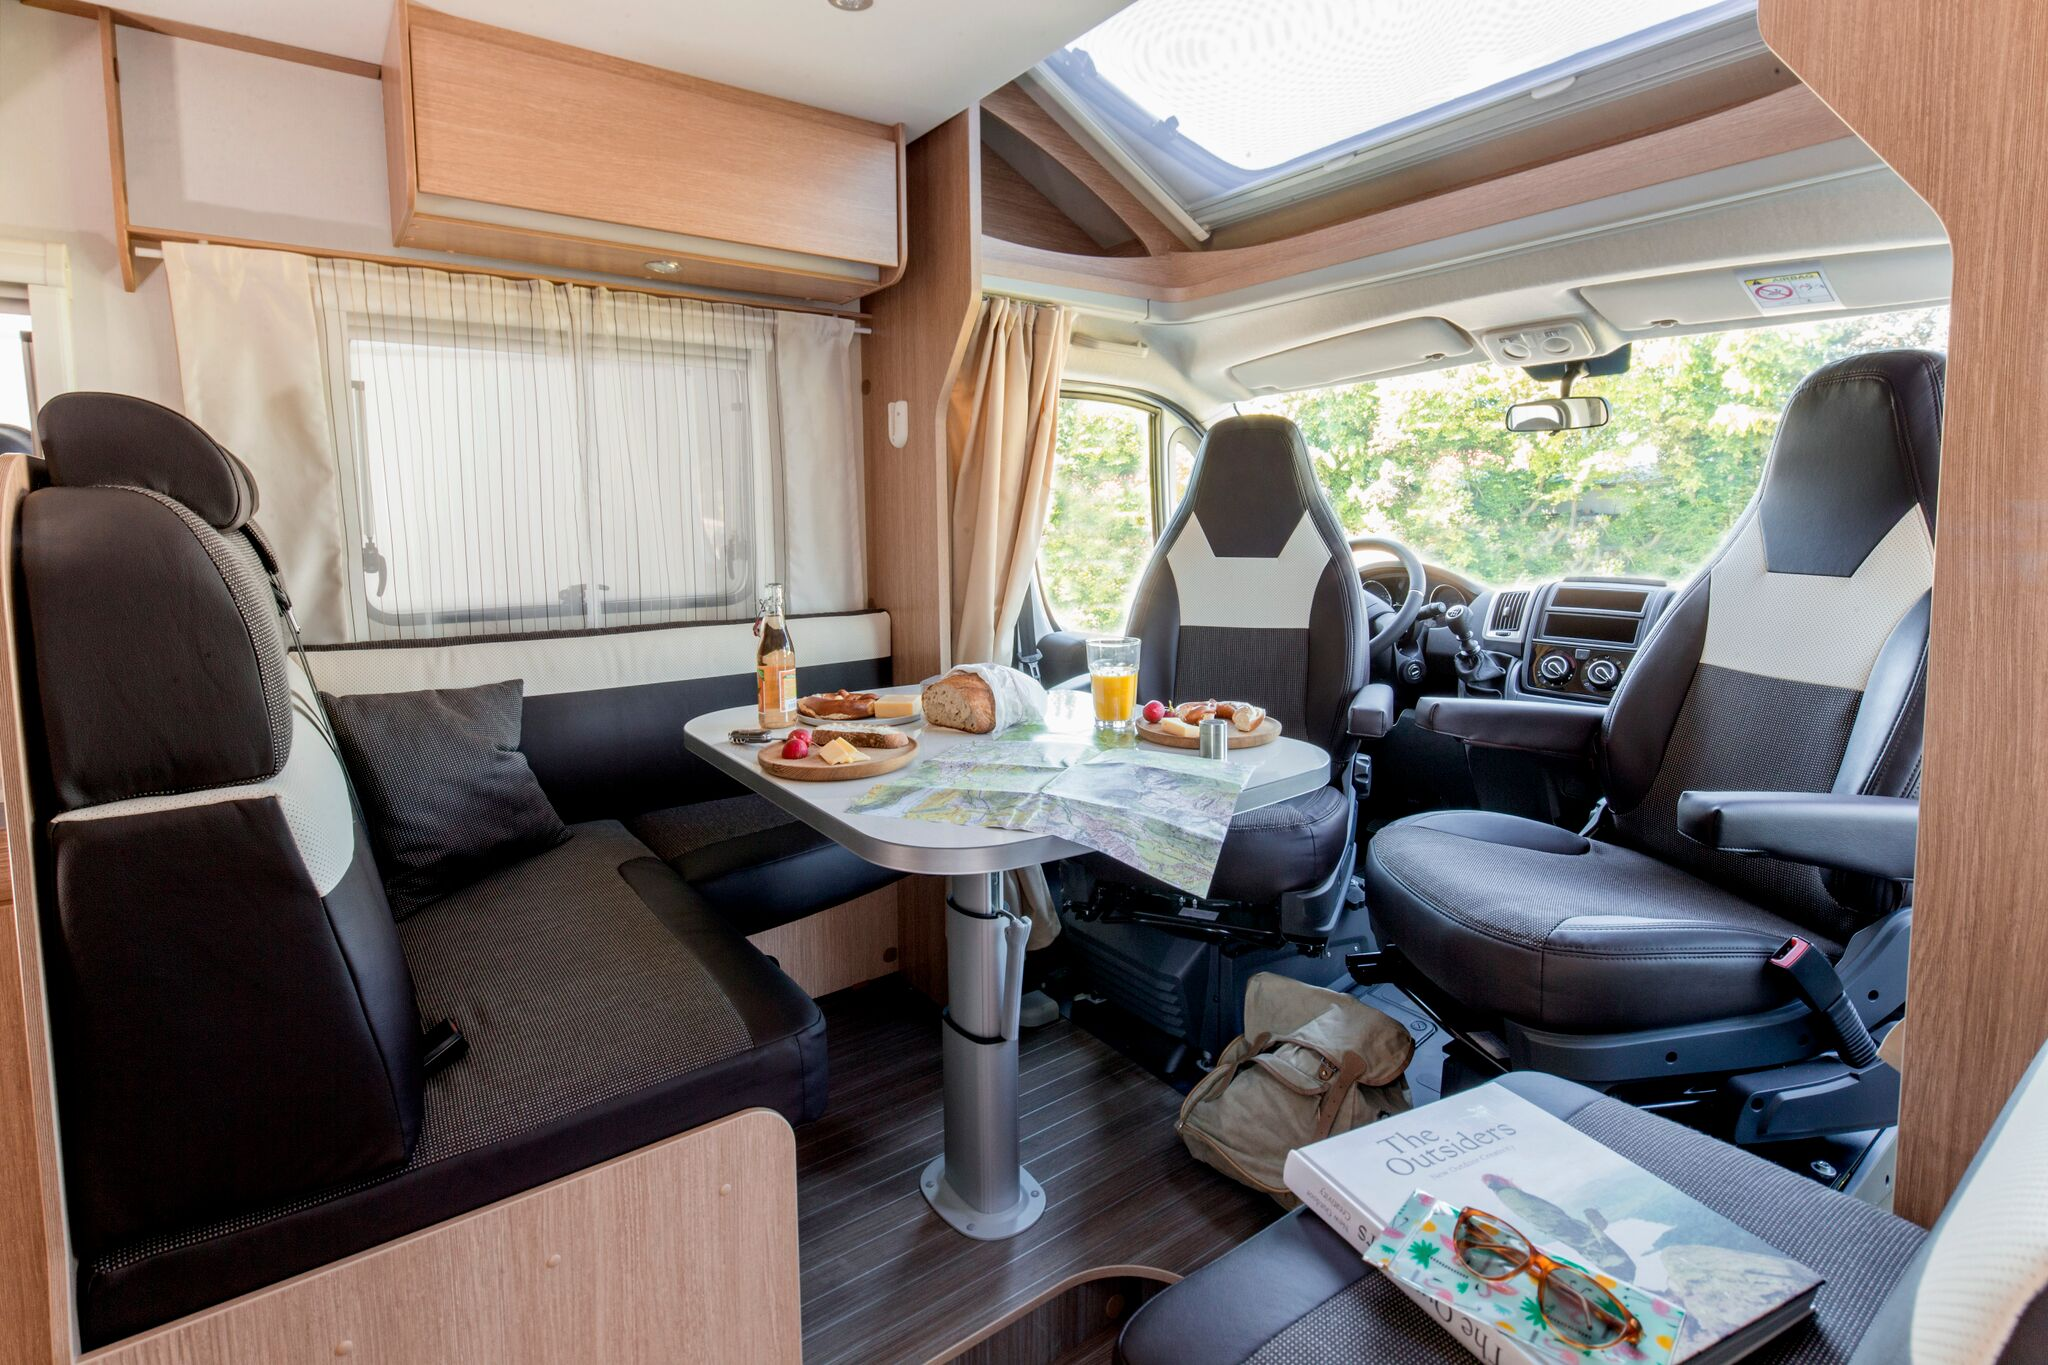 Thinking of changing from a caravan to a motorhome